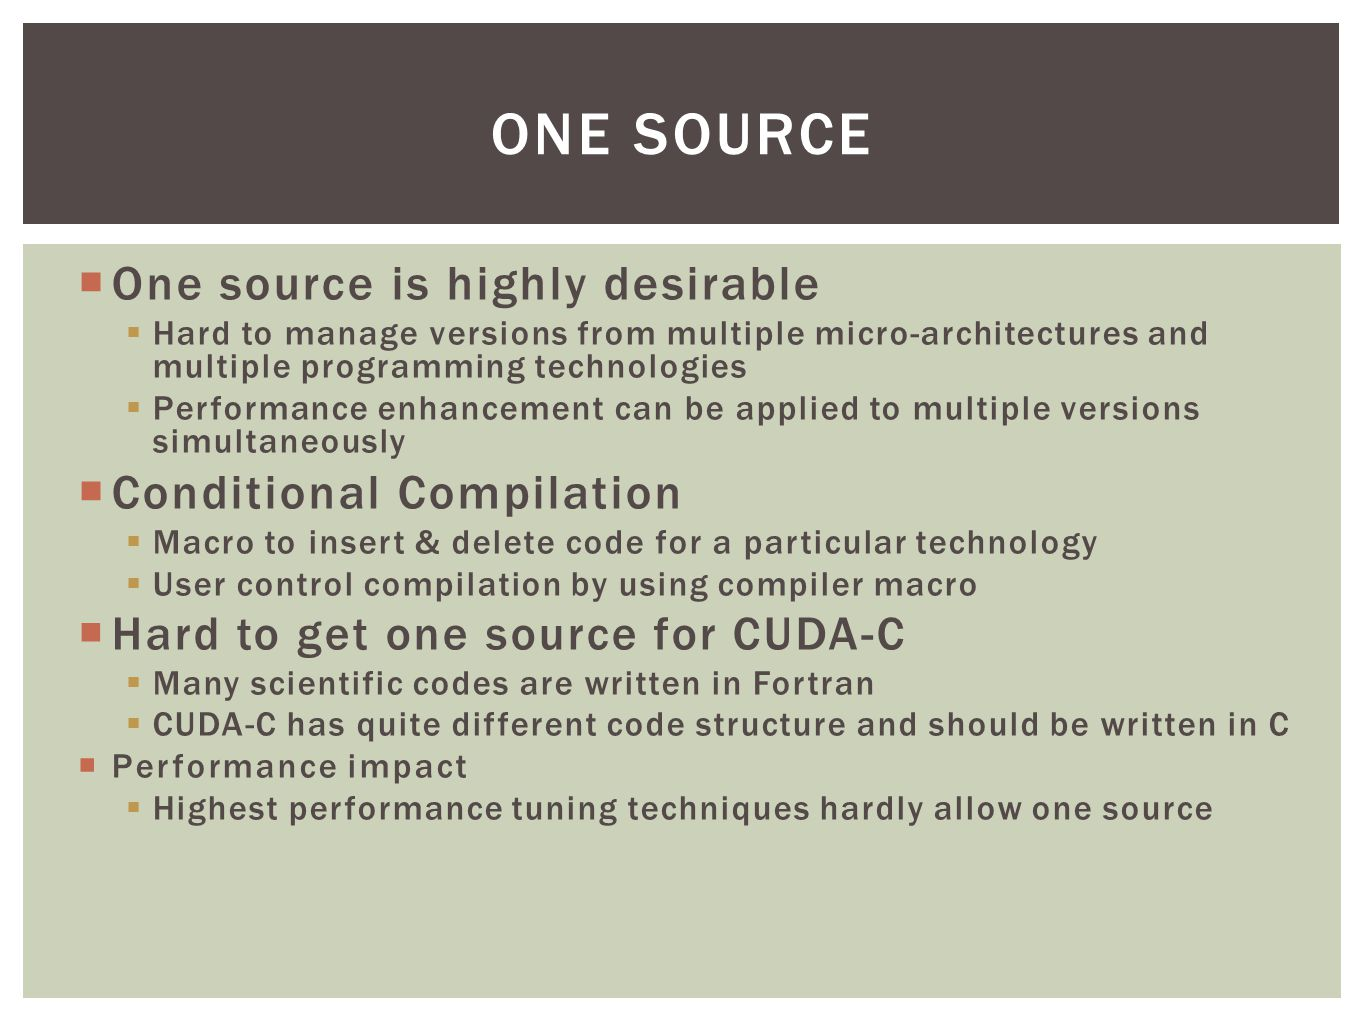  One source is highly desirable  Hard to manage versions from multiple micro-architectures and multiple programming technologies  Performance enhan